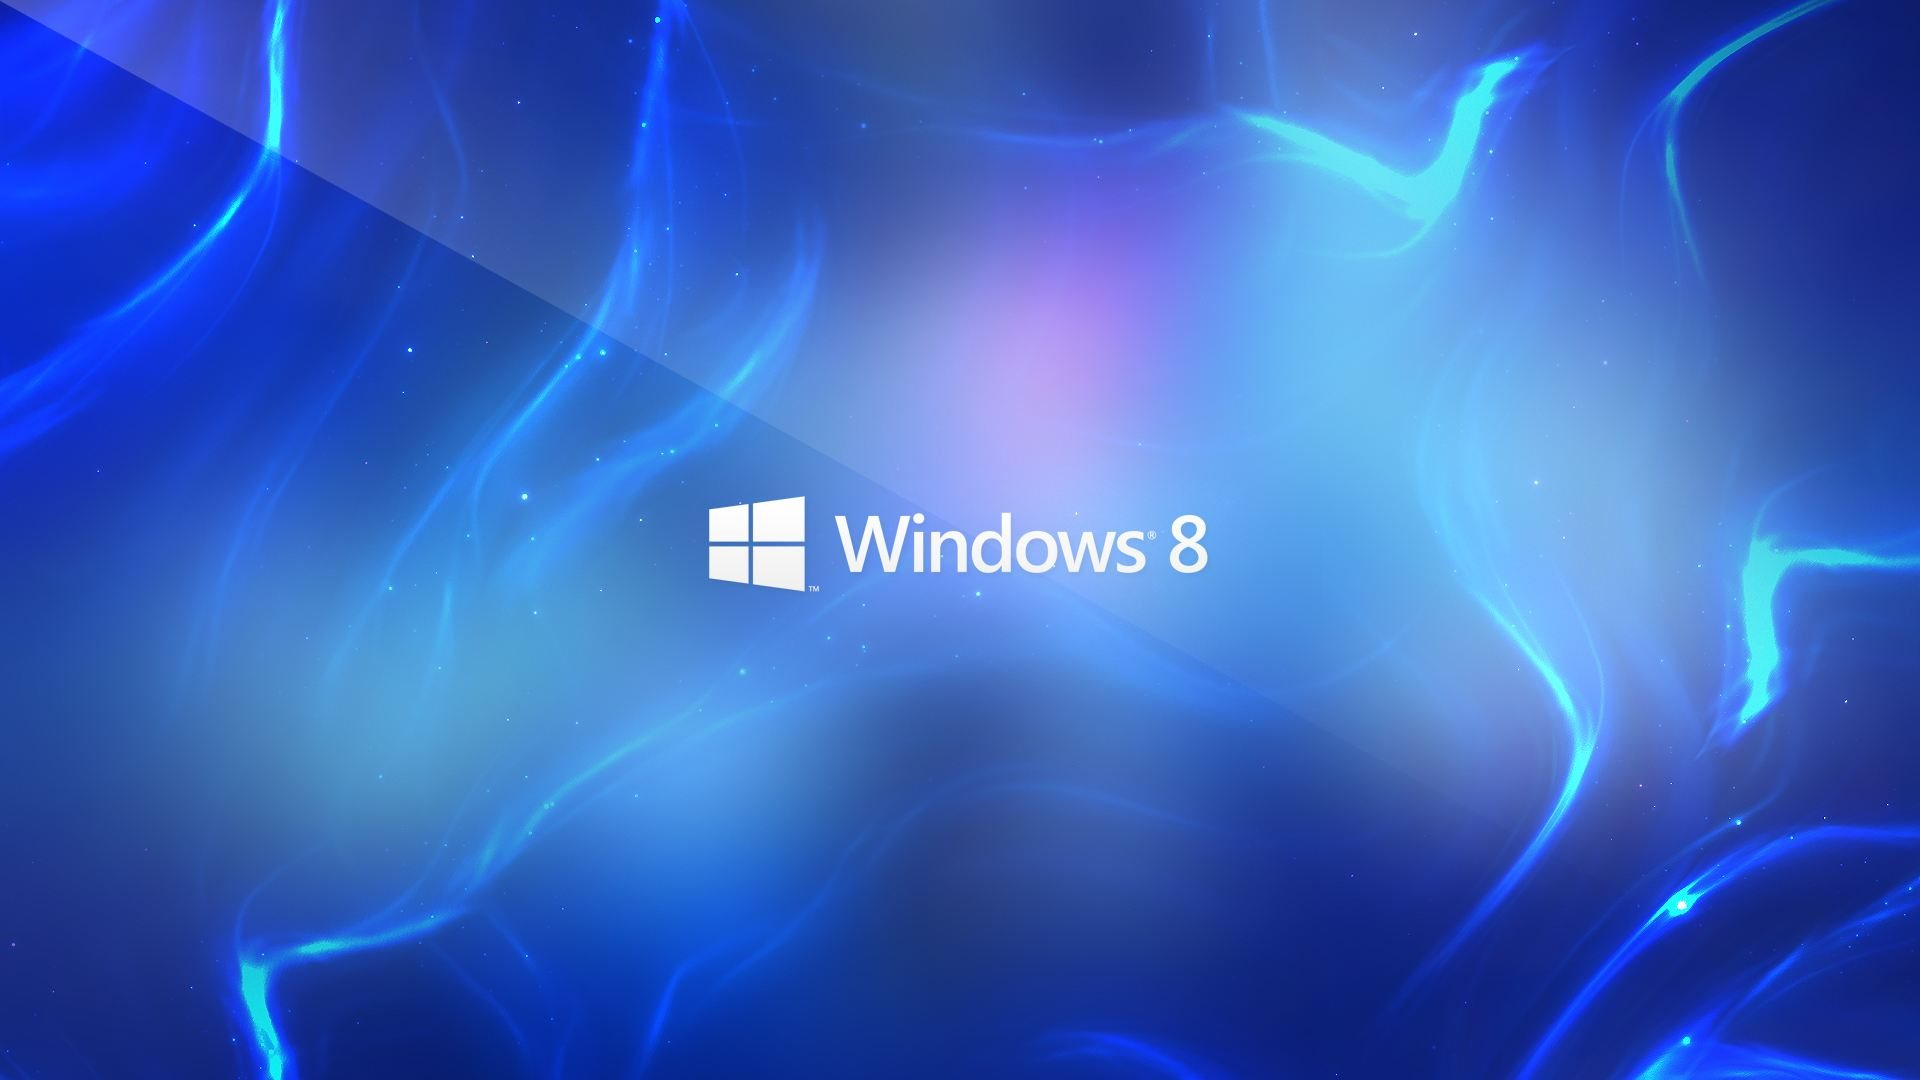 Microsoft Windows 8.1 HD Wallpaper Picture Image Free ...